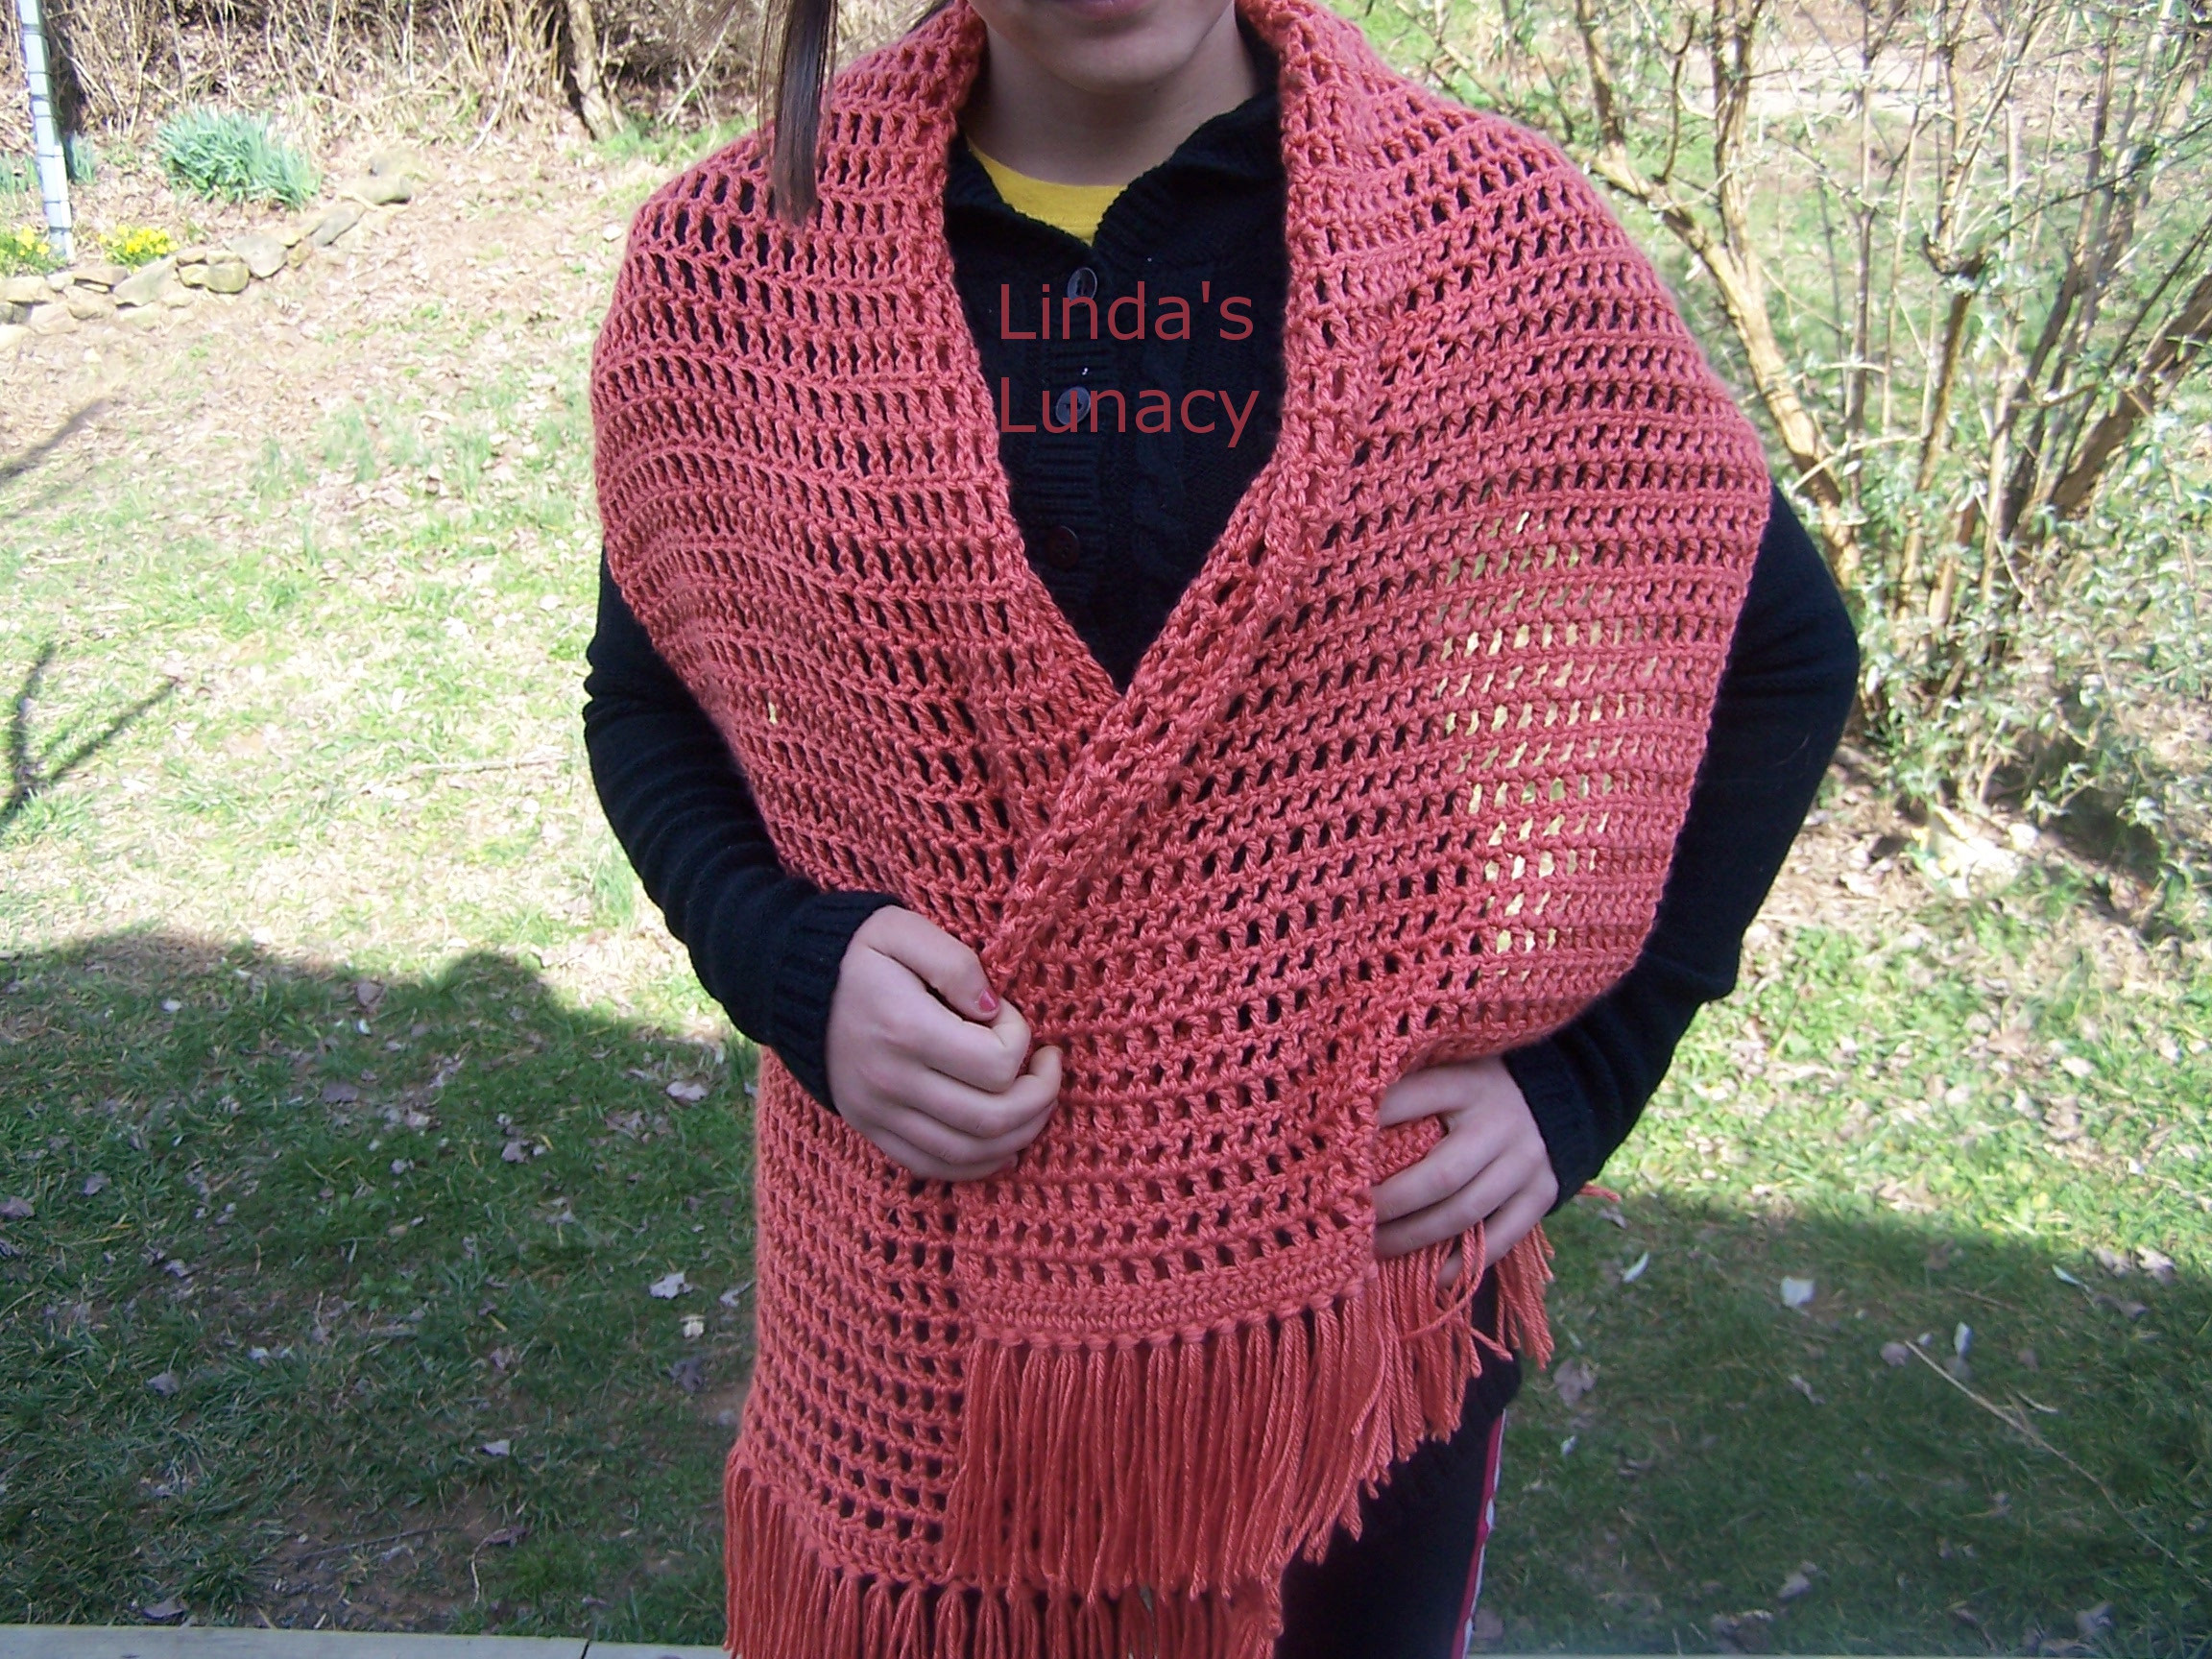 Crocheted Prayer Shawl Linda s Lunacy